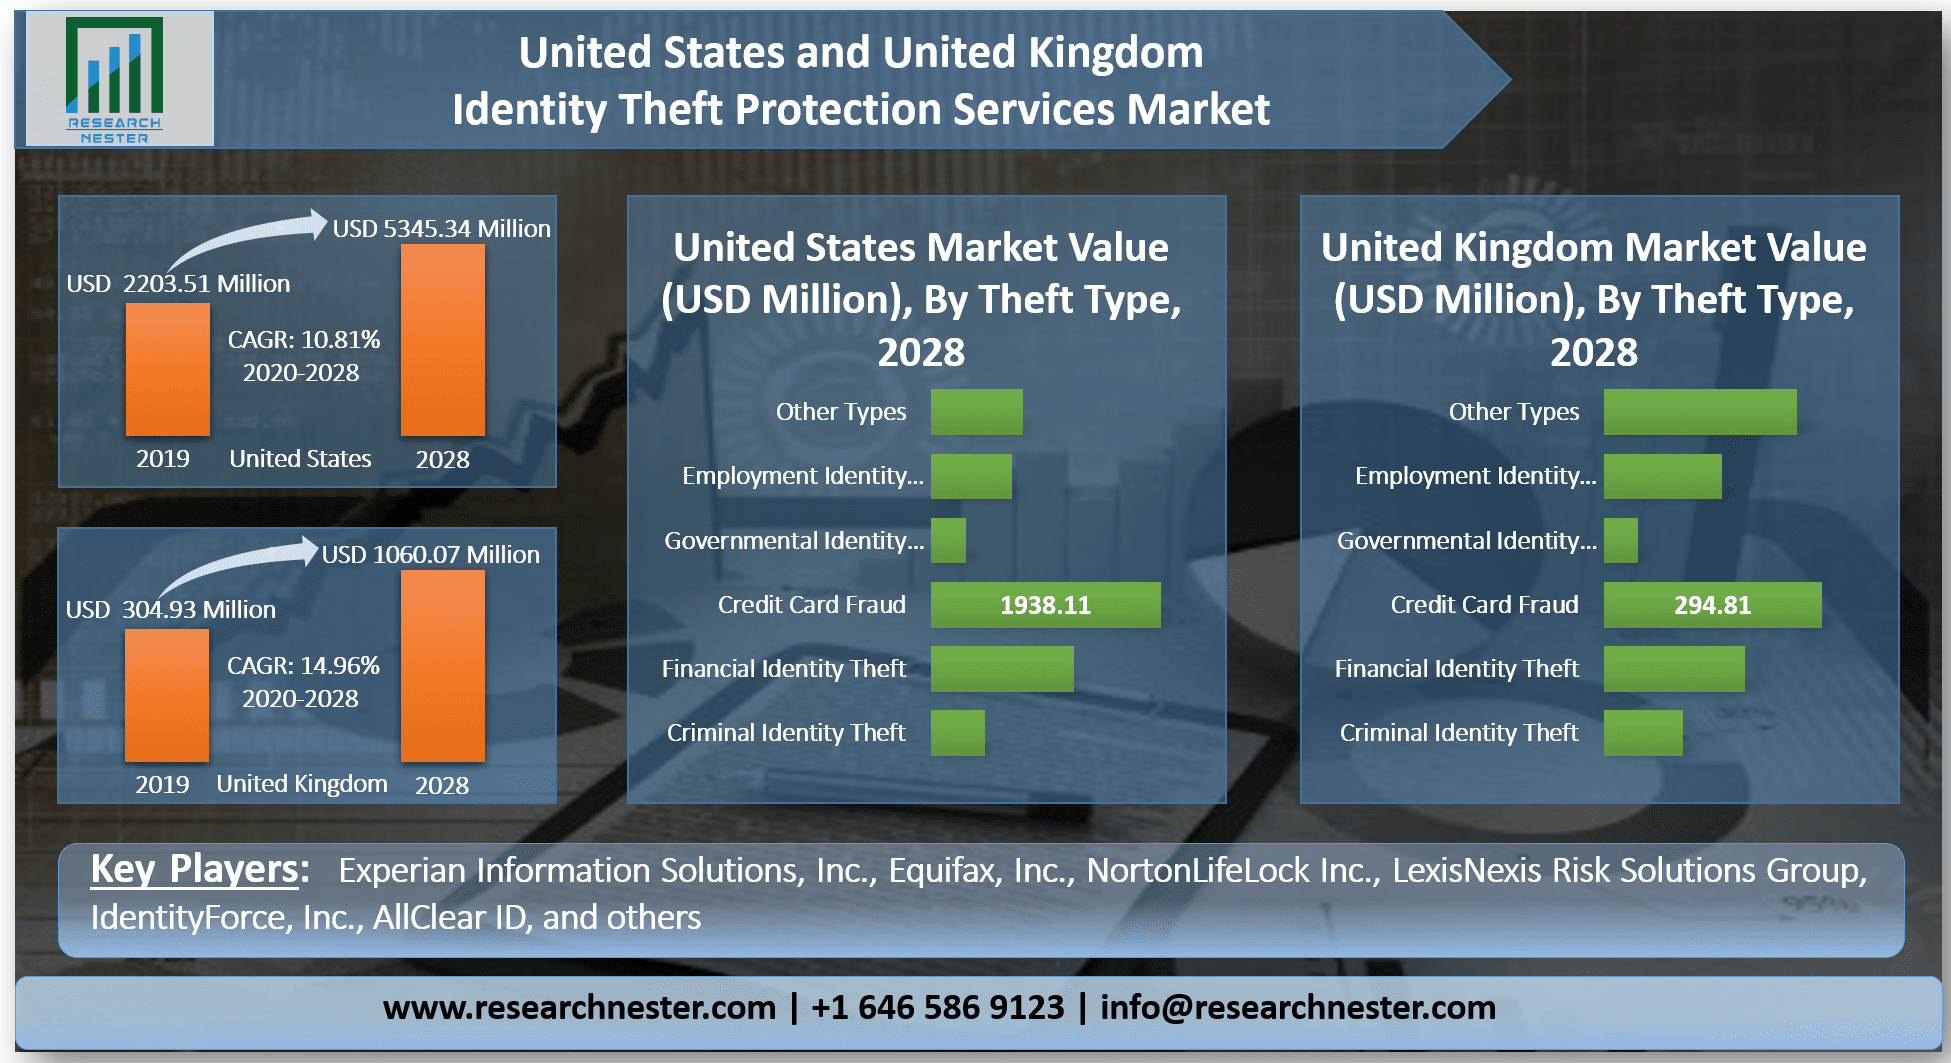 United-States-and-United-Kingdom-Identity-Theft-Protection-Services-Market